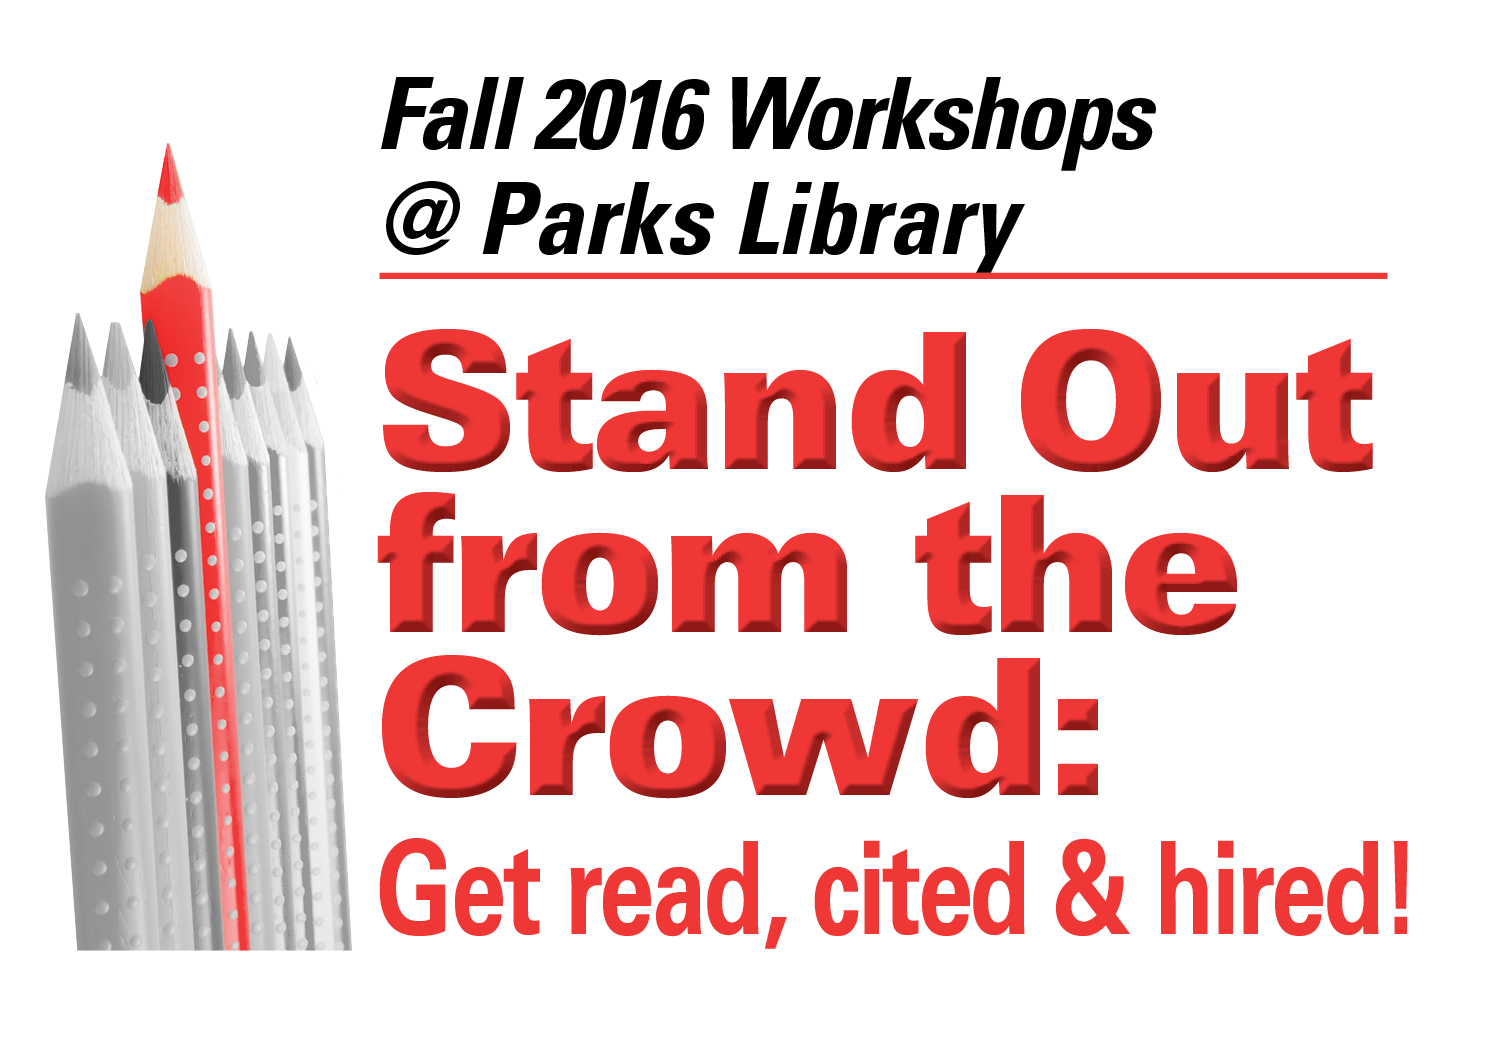 Image: red pencil in midst of gray pencils. Title: Stand Out from the Crowd: get read, cited and hired!